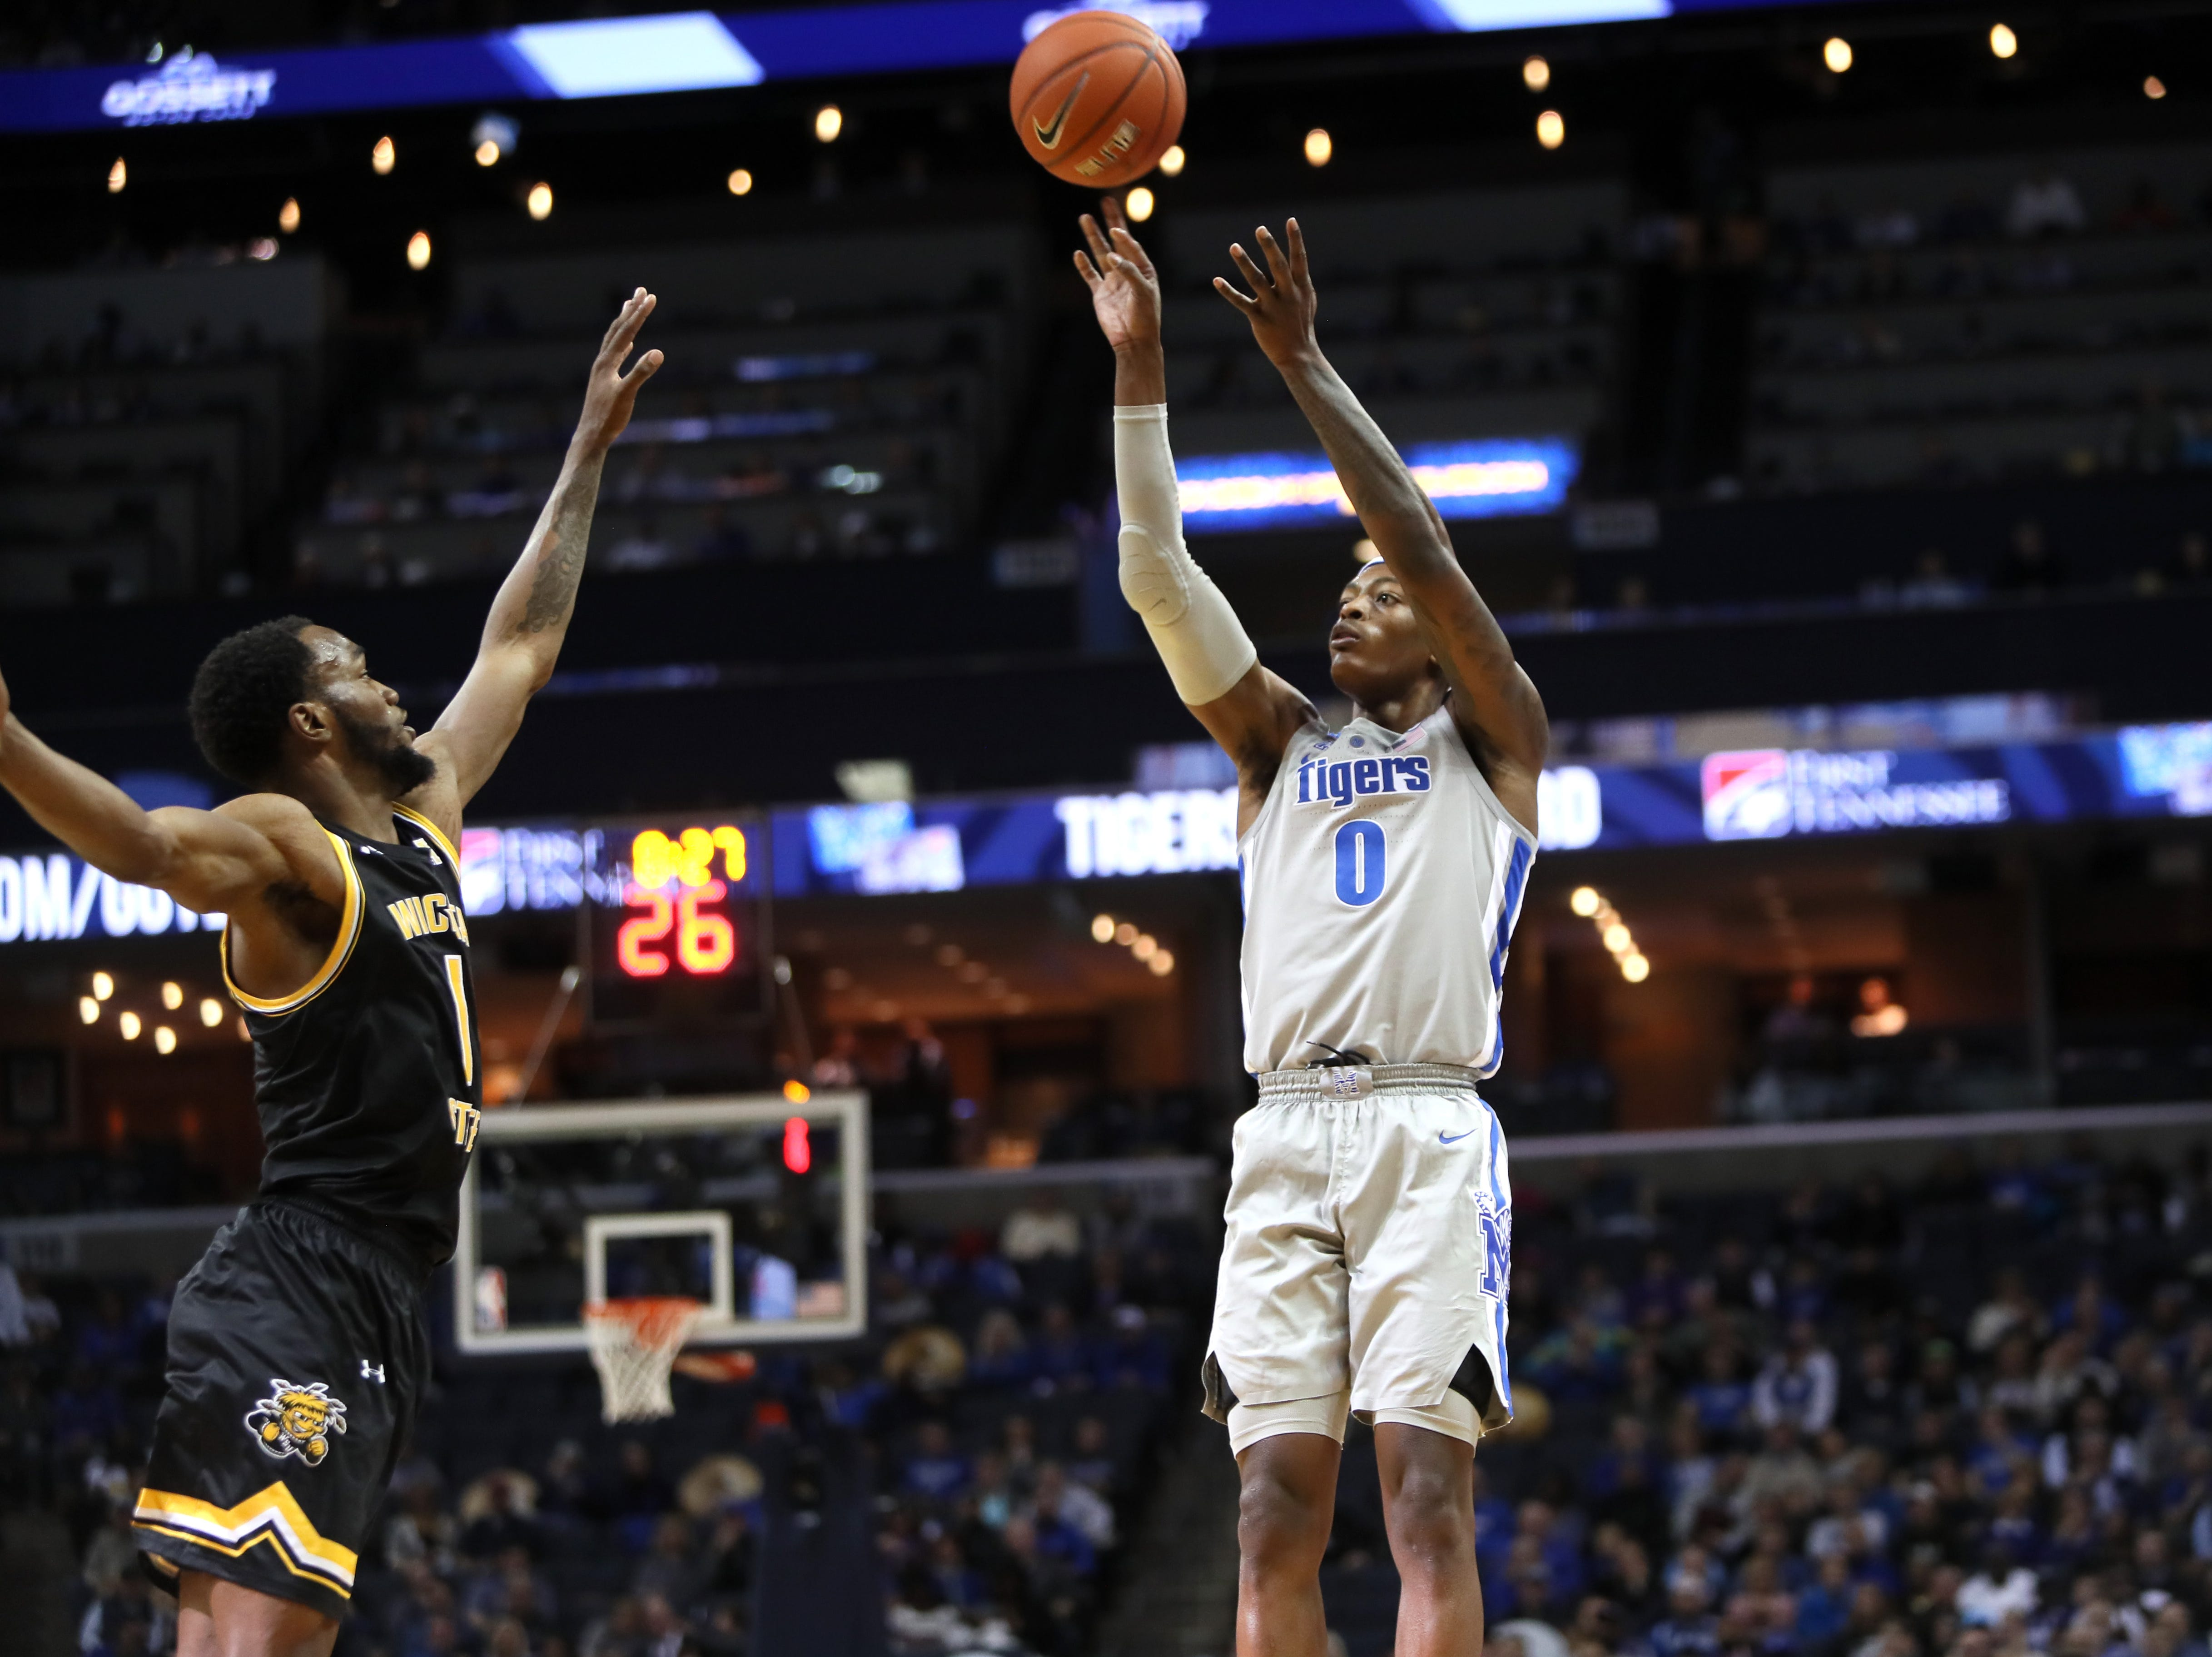 Memphis Tigers forward Kyvon Davenport makes a 3-pointer over shoots the ball over Wichita State Shockers forward Markis McDuffie during their game at the FedExForum on Thursday, Jan. 3, 2019.